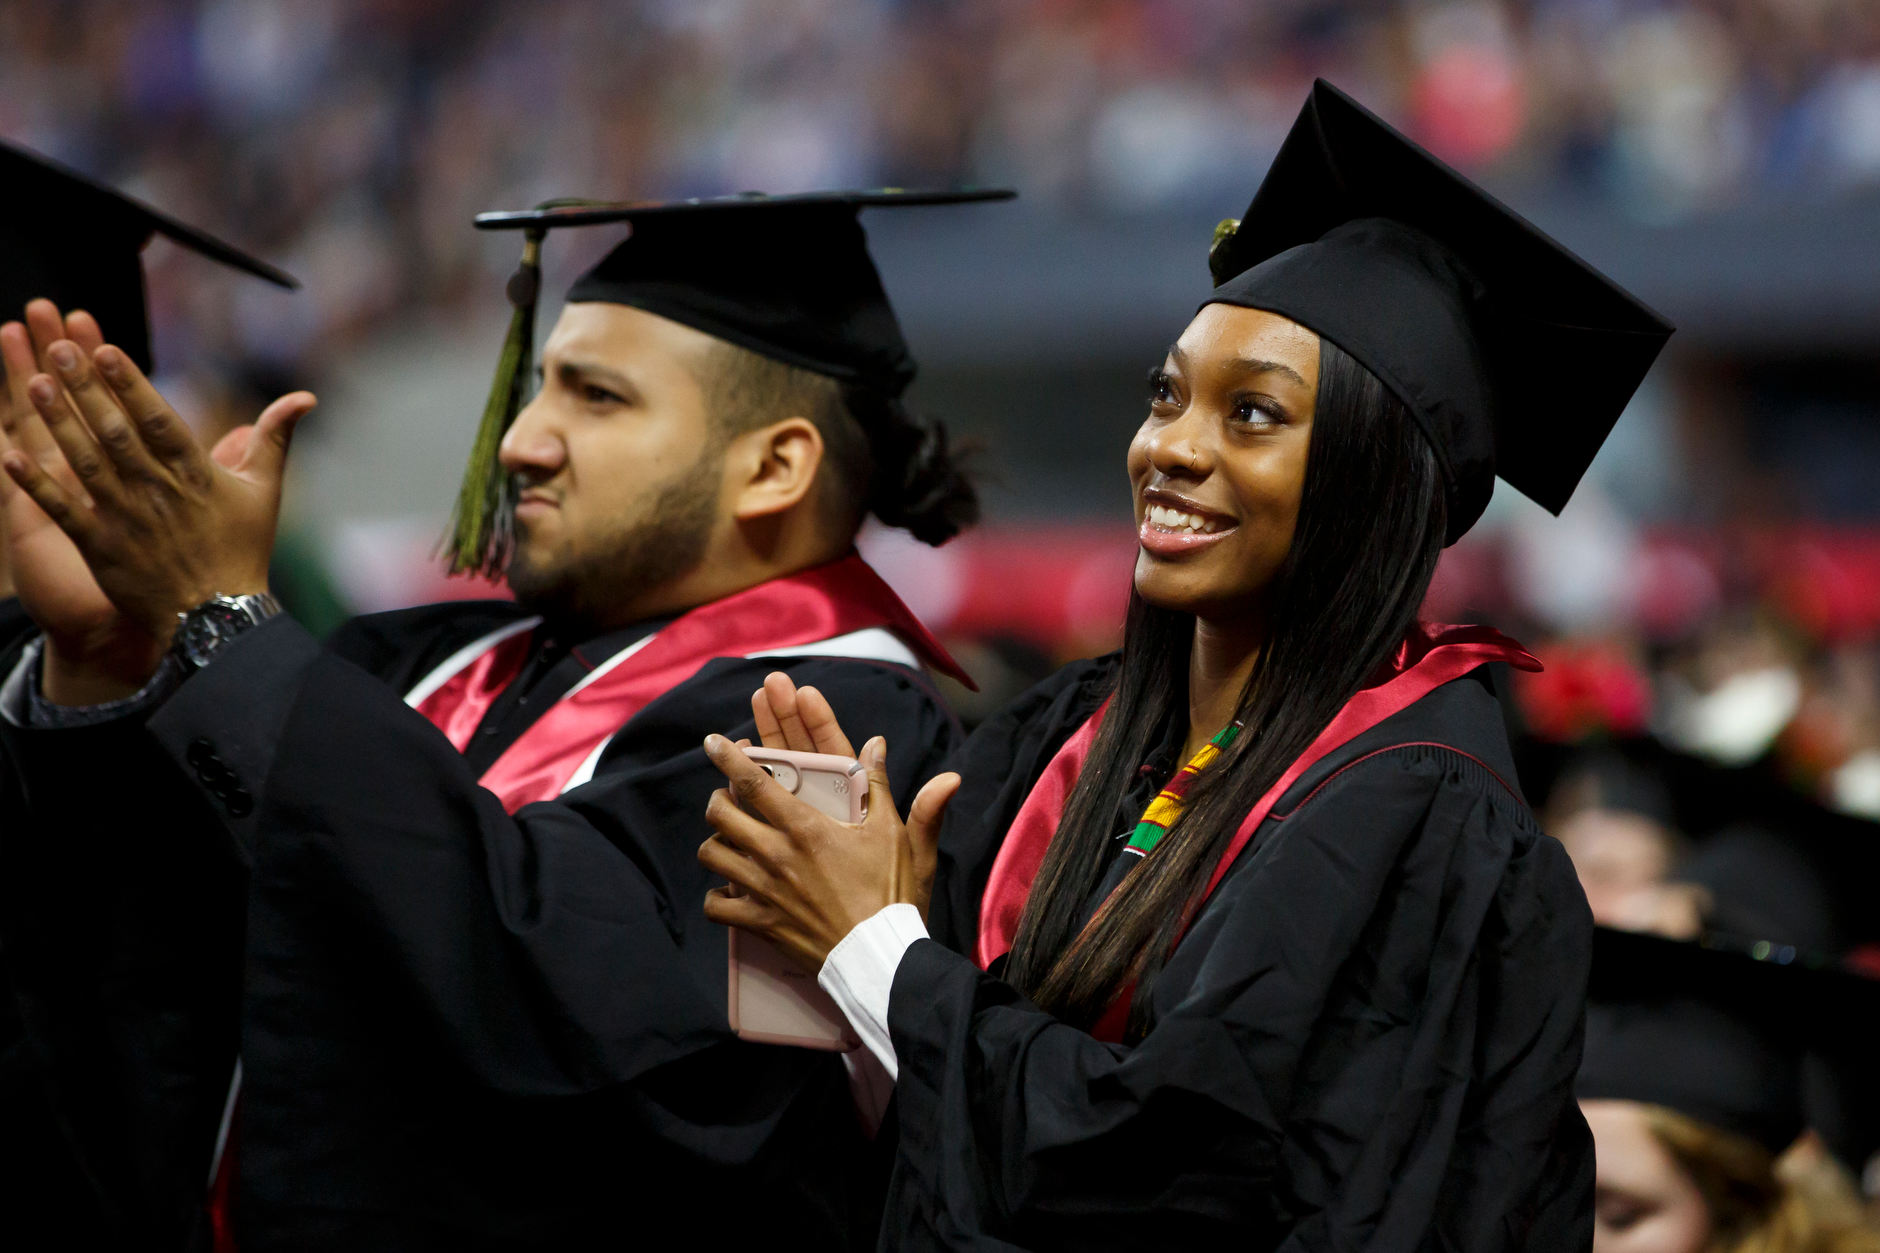 Graduates stand for recognition during the IUPUI Commencement at Lucas Oil Stadium on Saturday, May 11, 2019. (James Brosher/Indiana University)